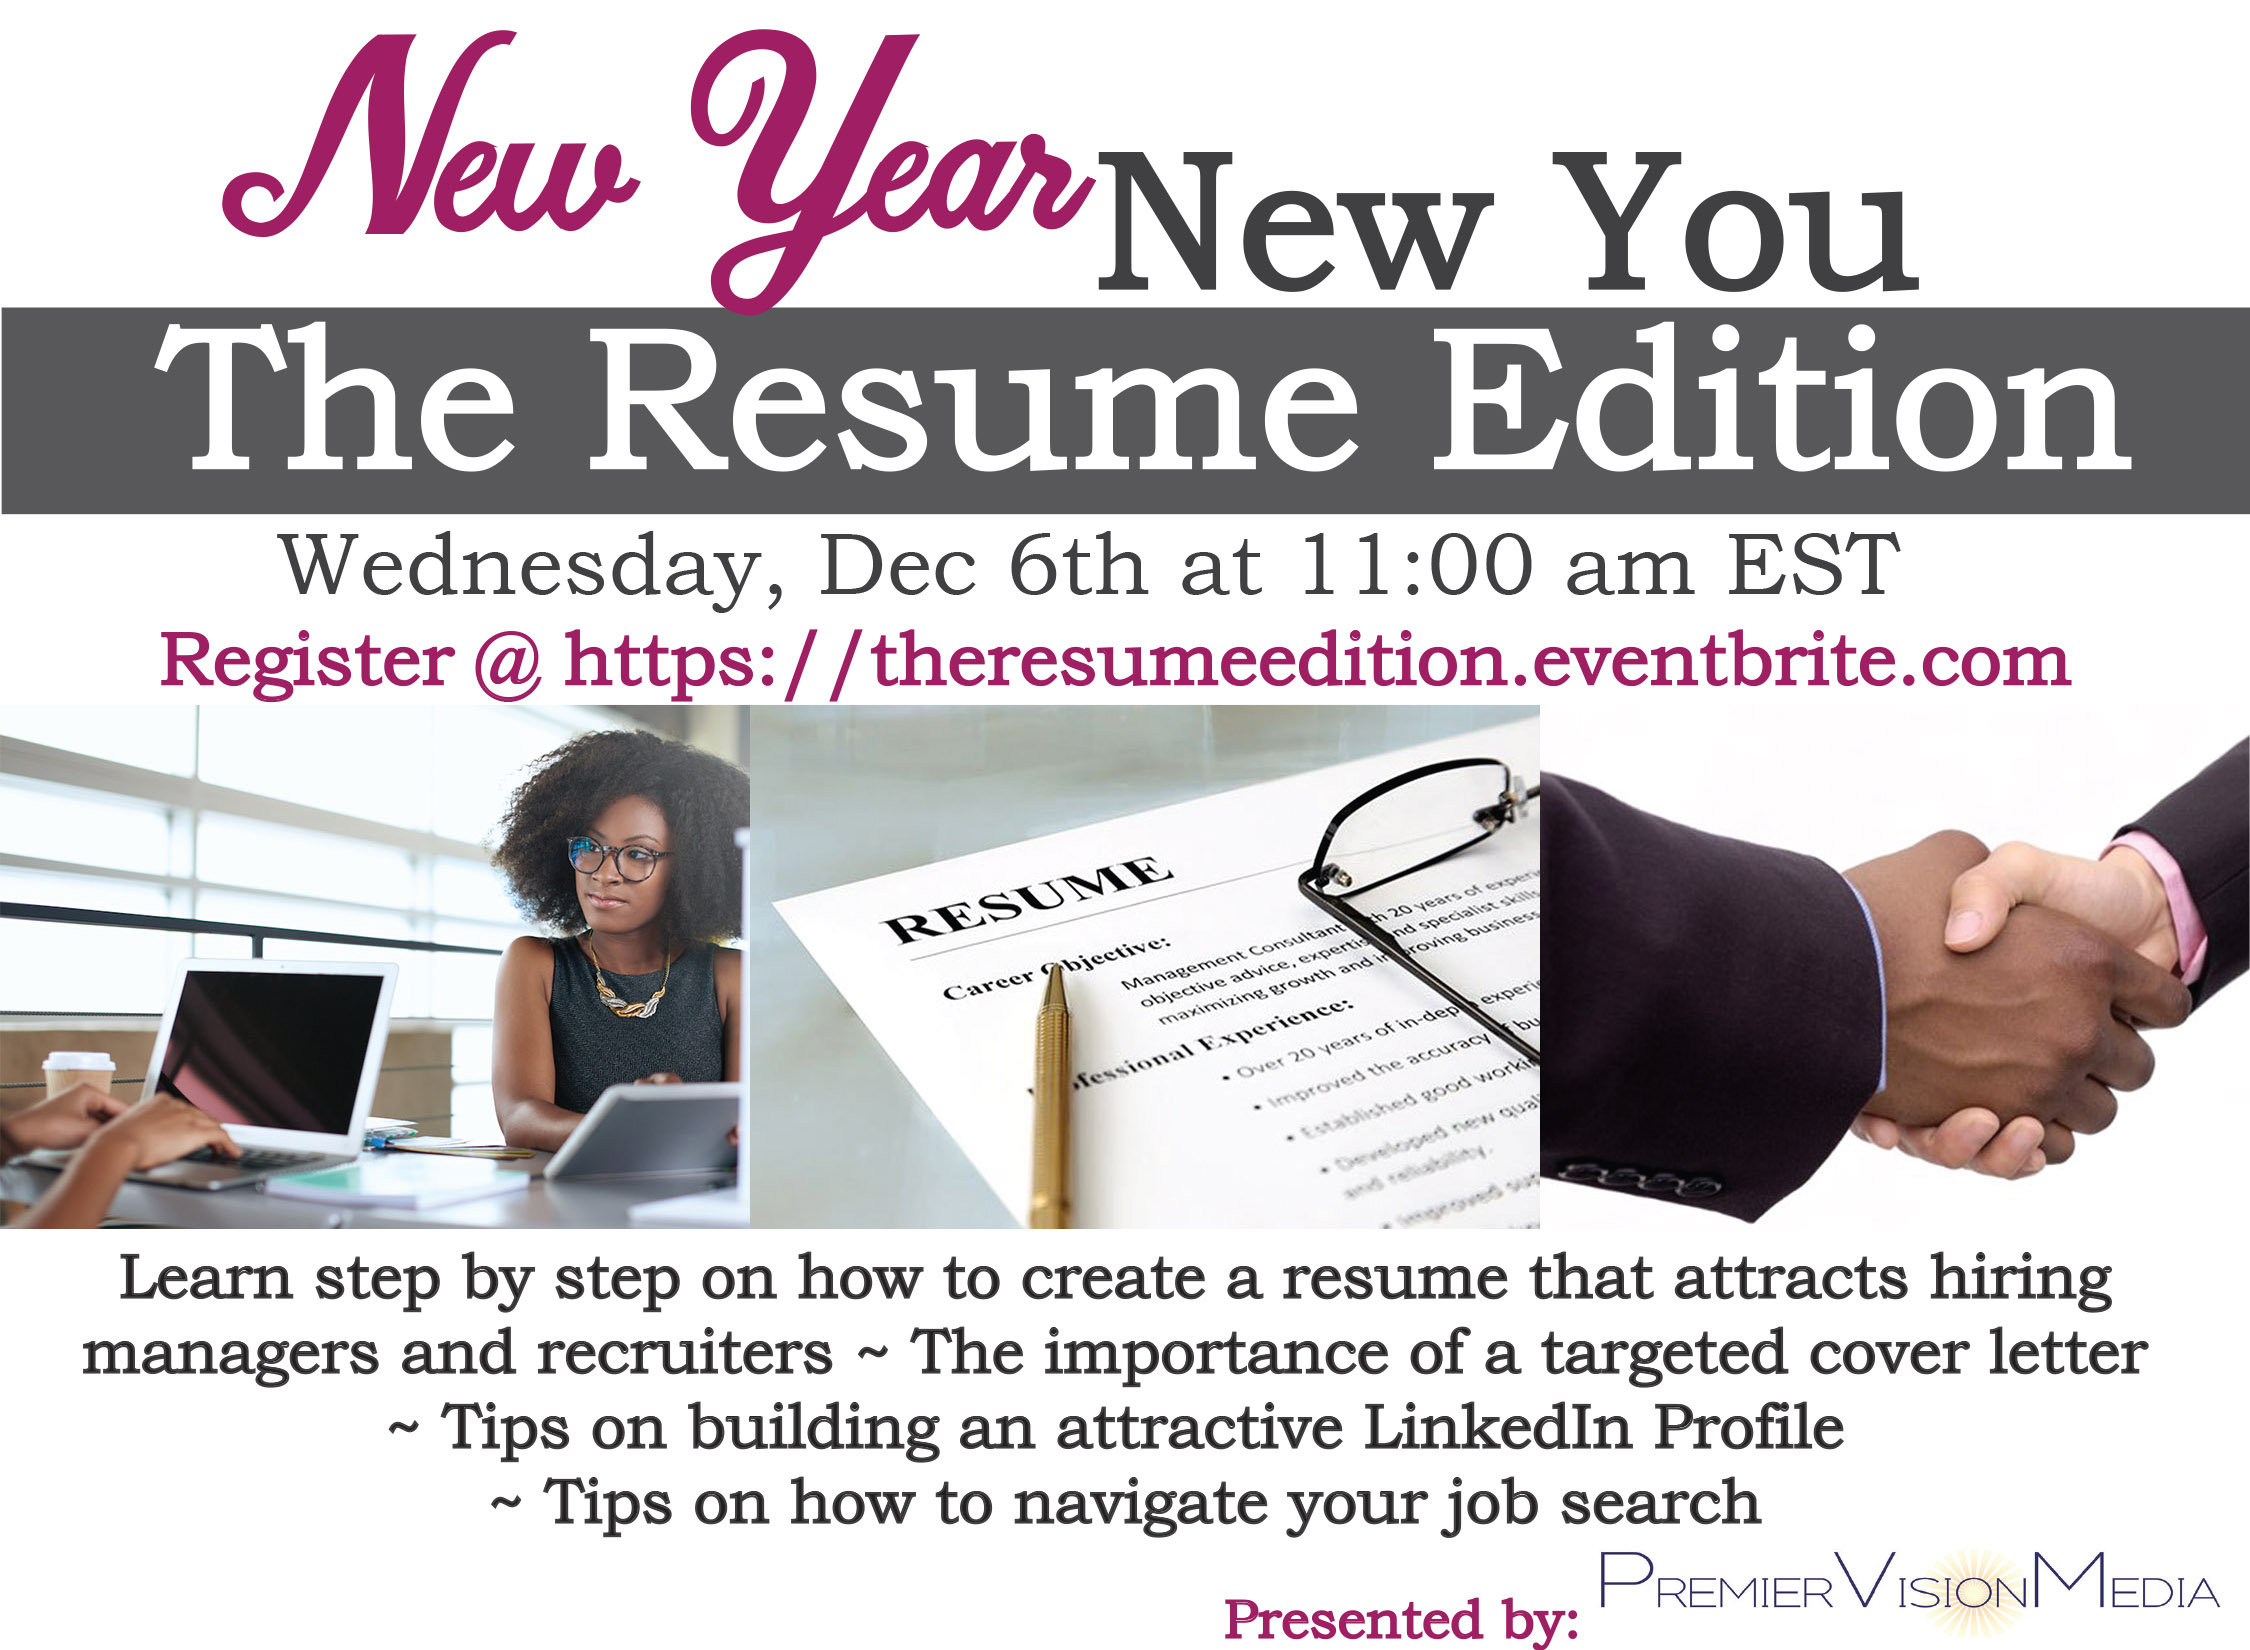 Career Webinar Presented by Premier Vision Media